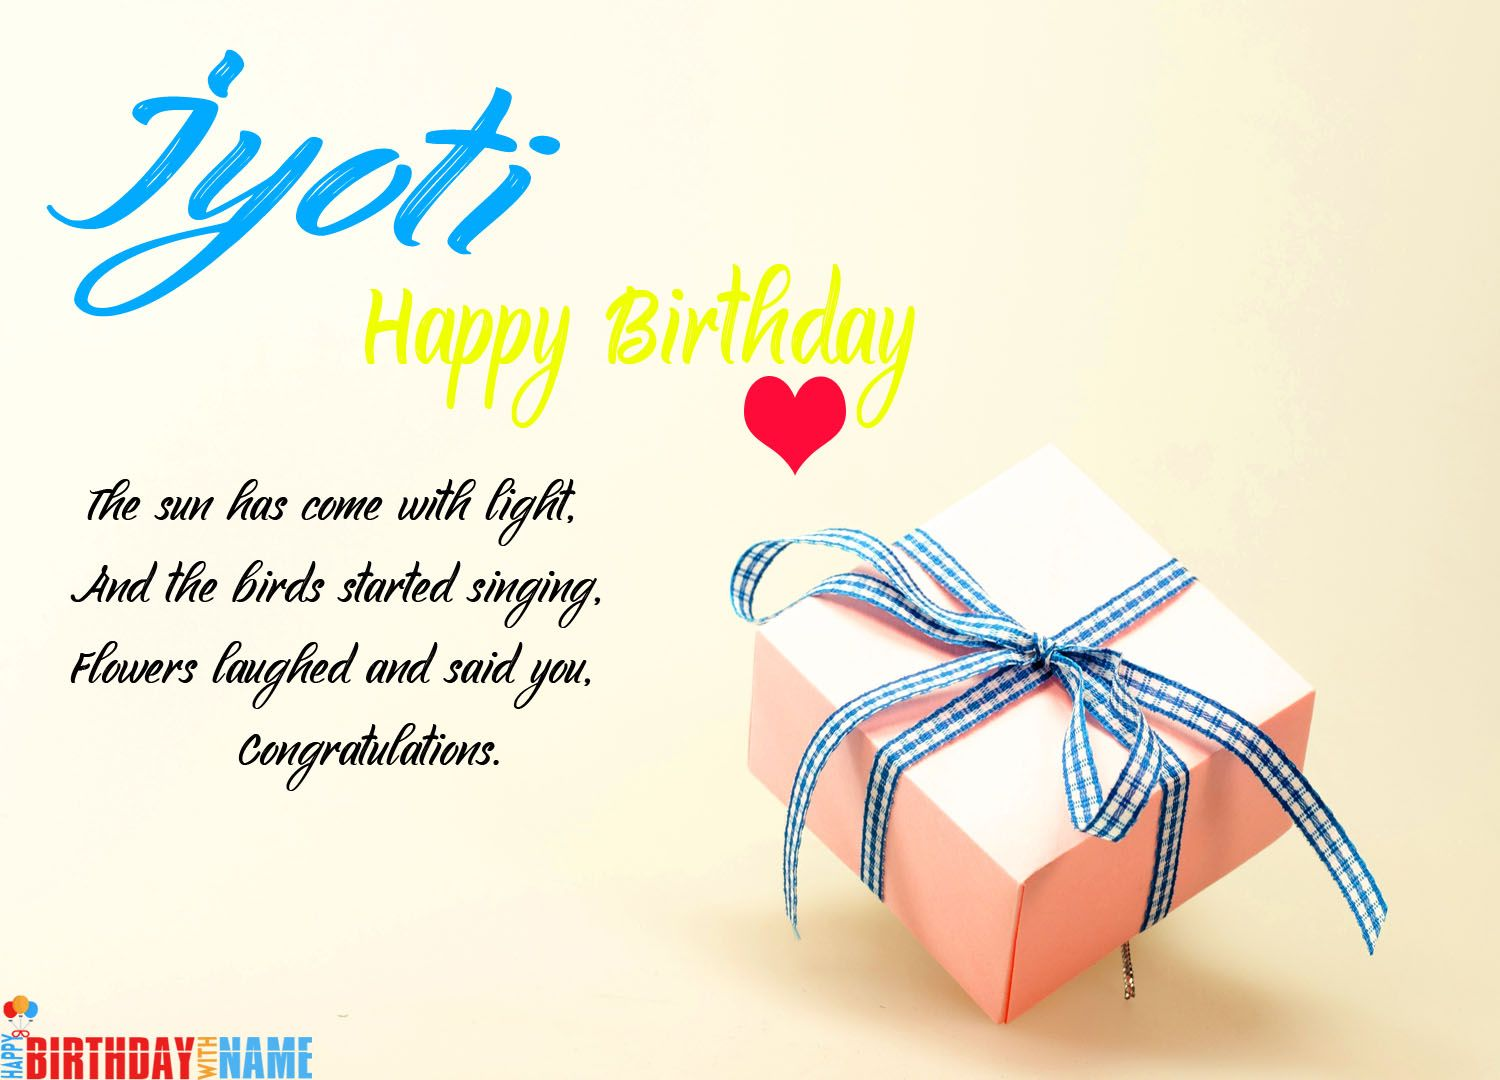 Happy Birthday Jyoti Wishes Images, Cake & Songs in 2020